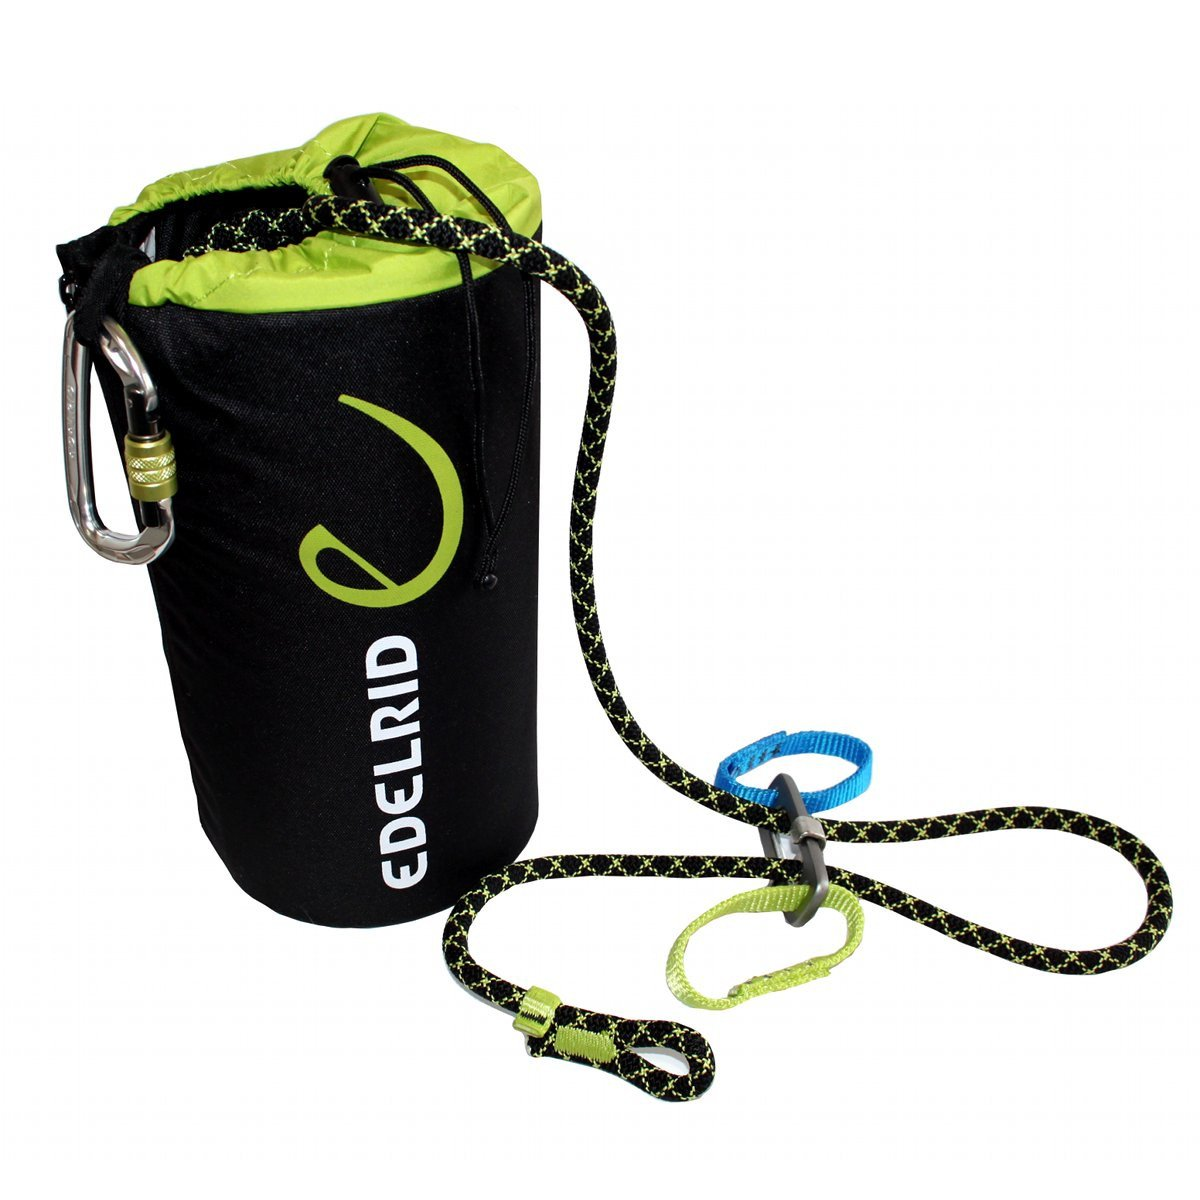 Edelrid Via Ferrata Belay Kit, showing rope bag, lanyard and carabiner in black and green colours